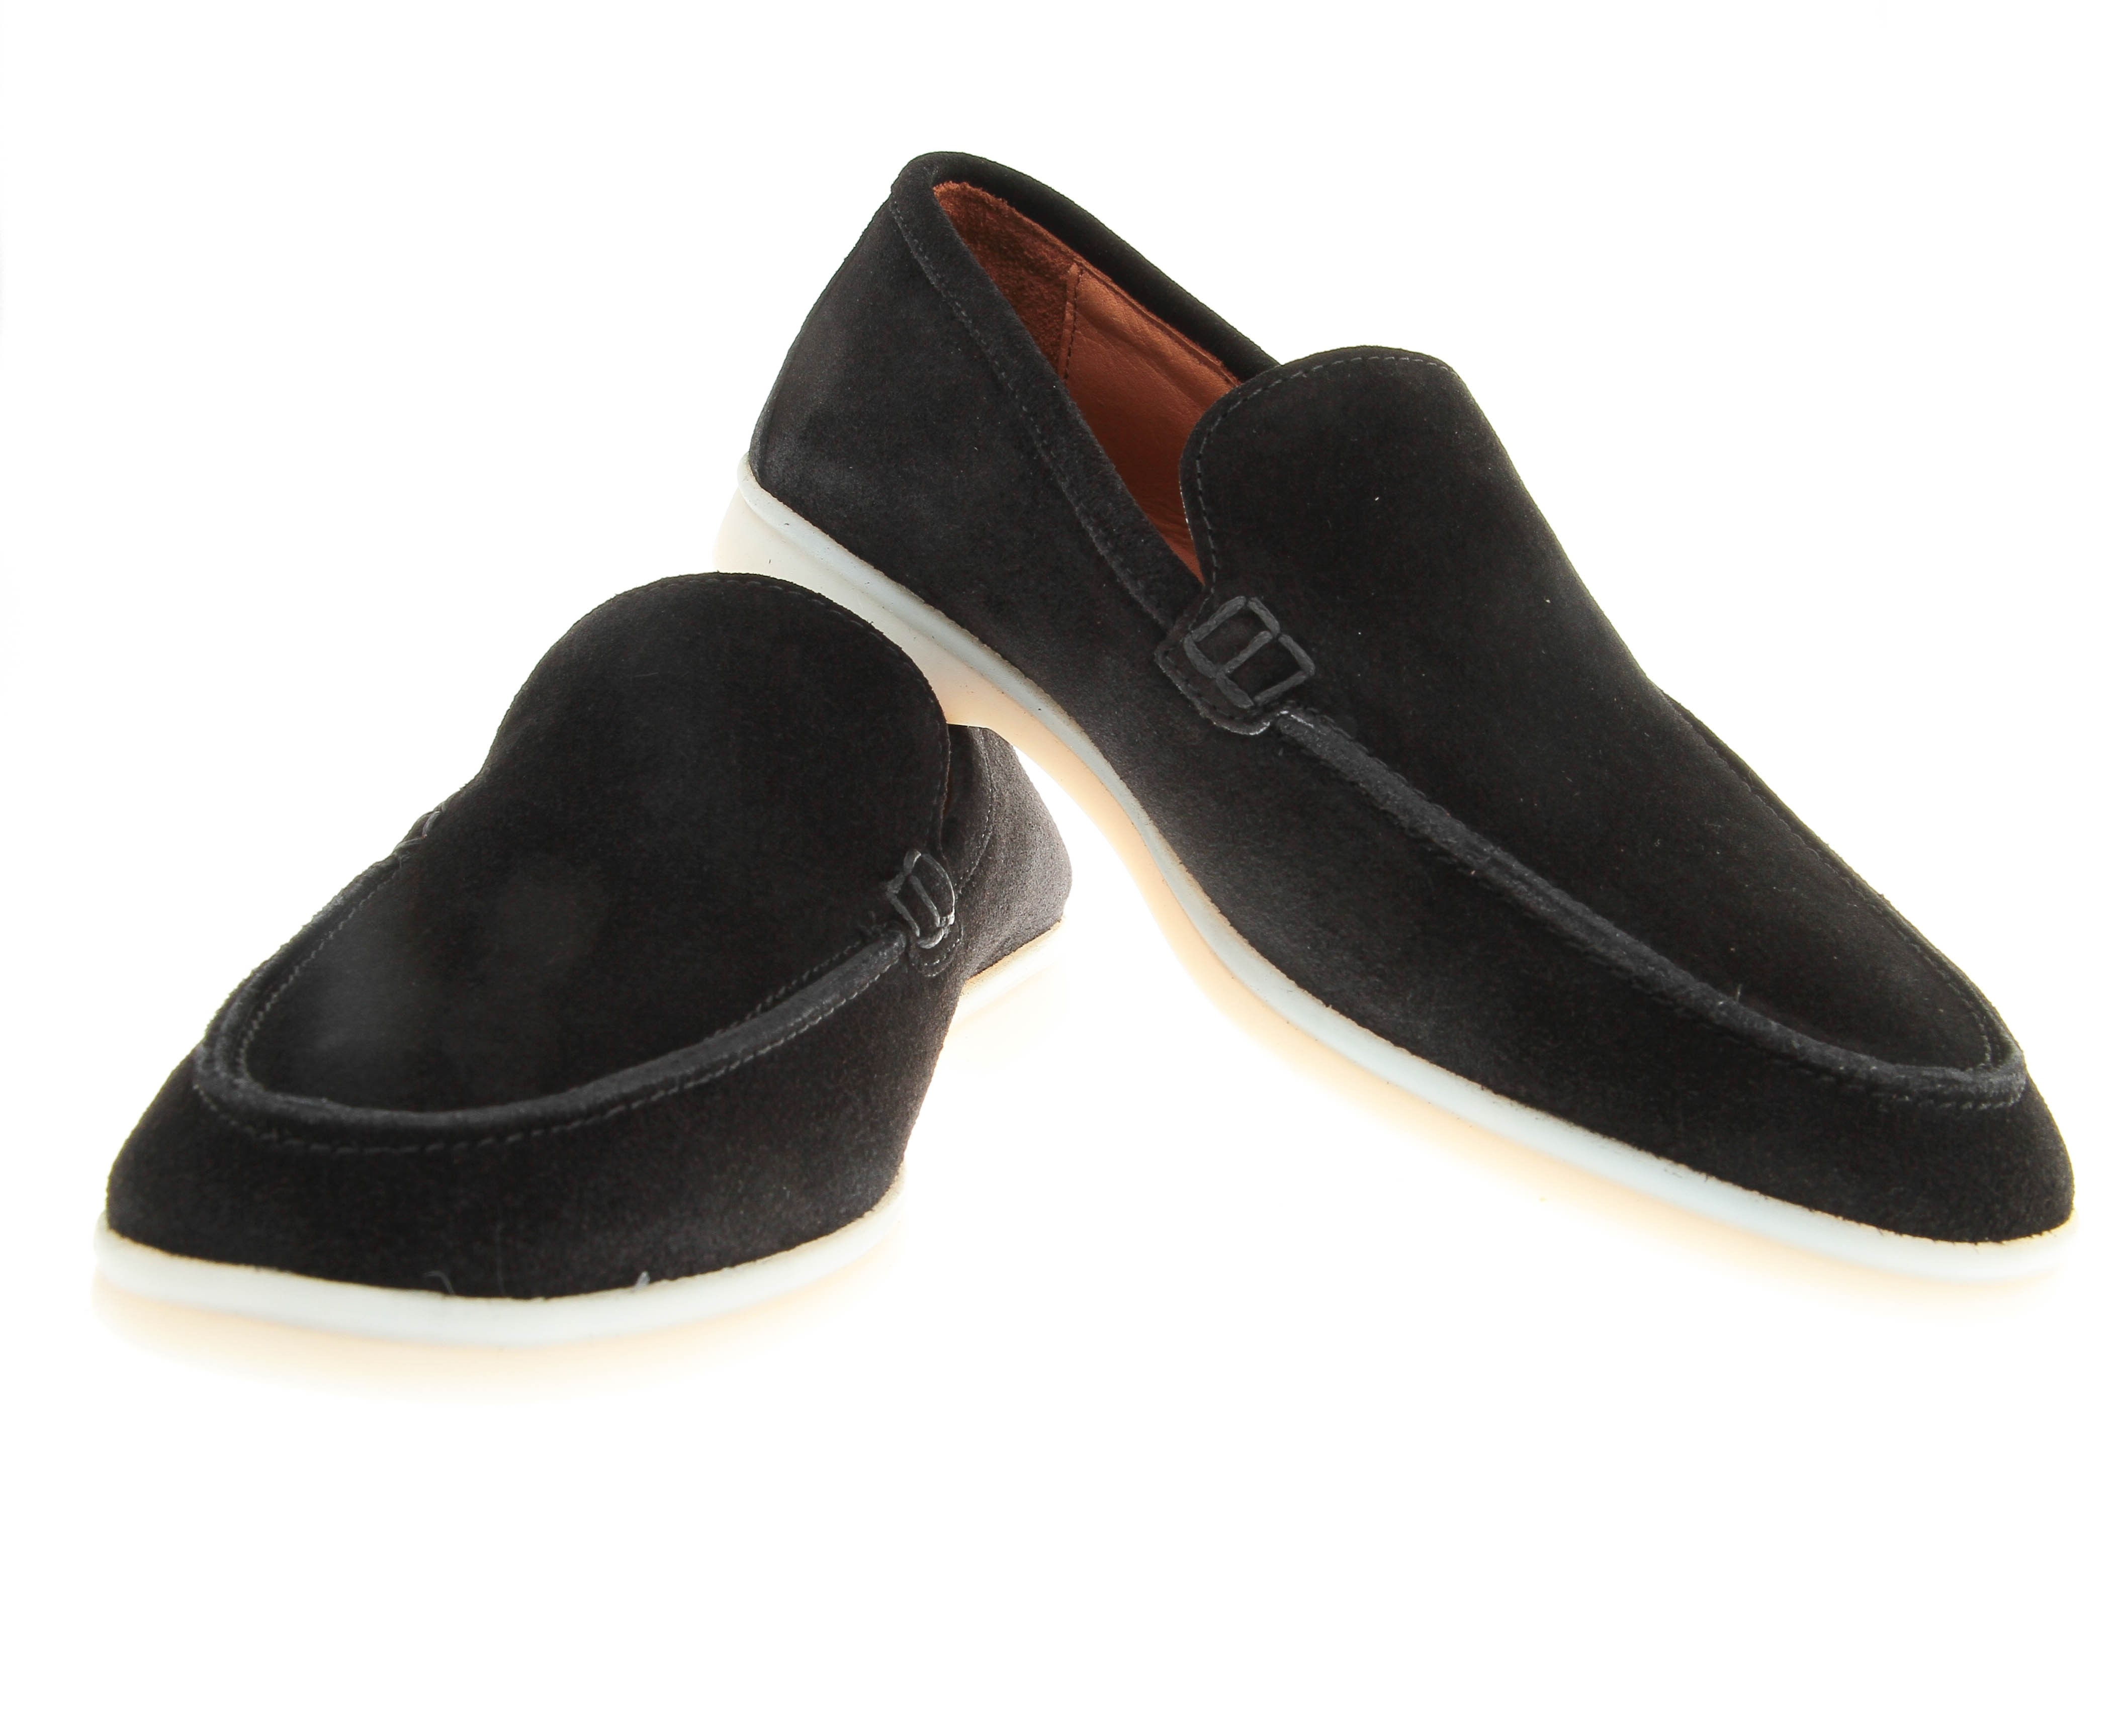 Mocassins : Noir - Veau Velours - Made in Italy